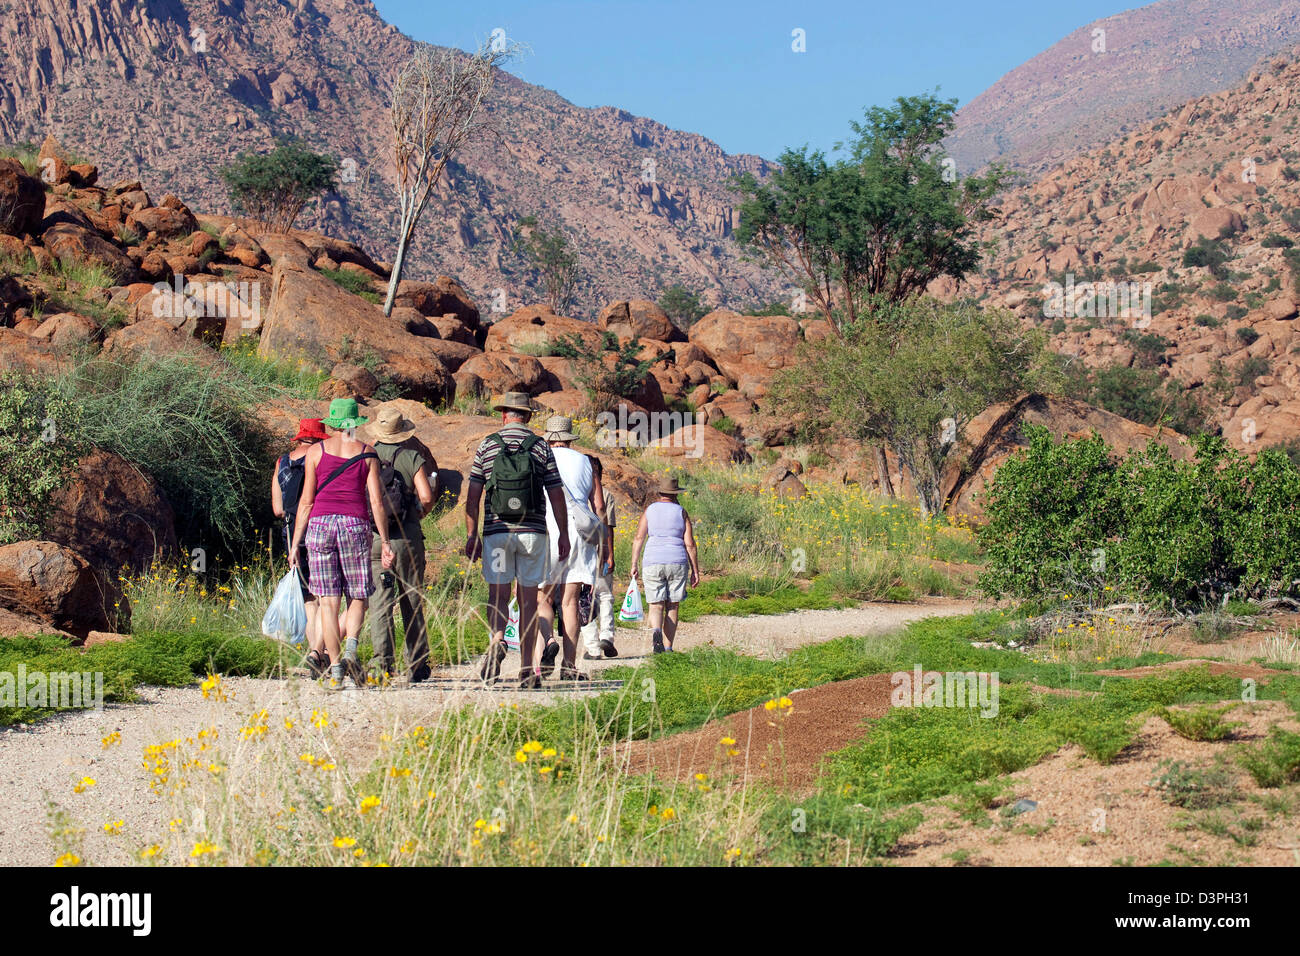 Elderly tourists on excursion hiking along trail at Brandberg Mountain, Damaraland, Namibia, South Africa - Stock Image